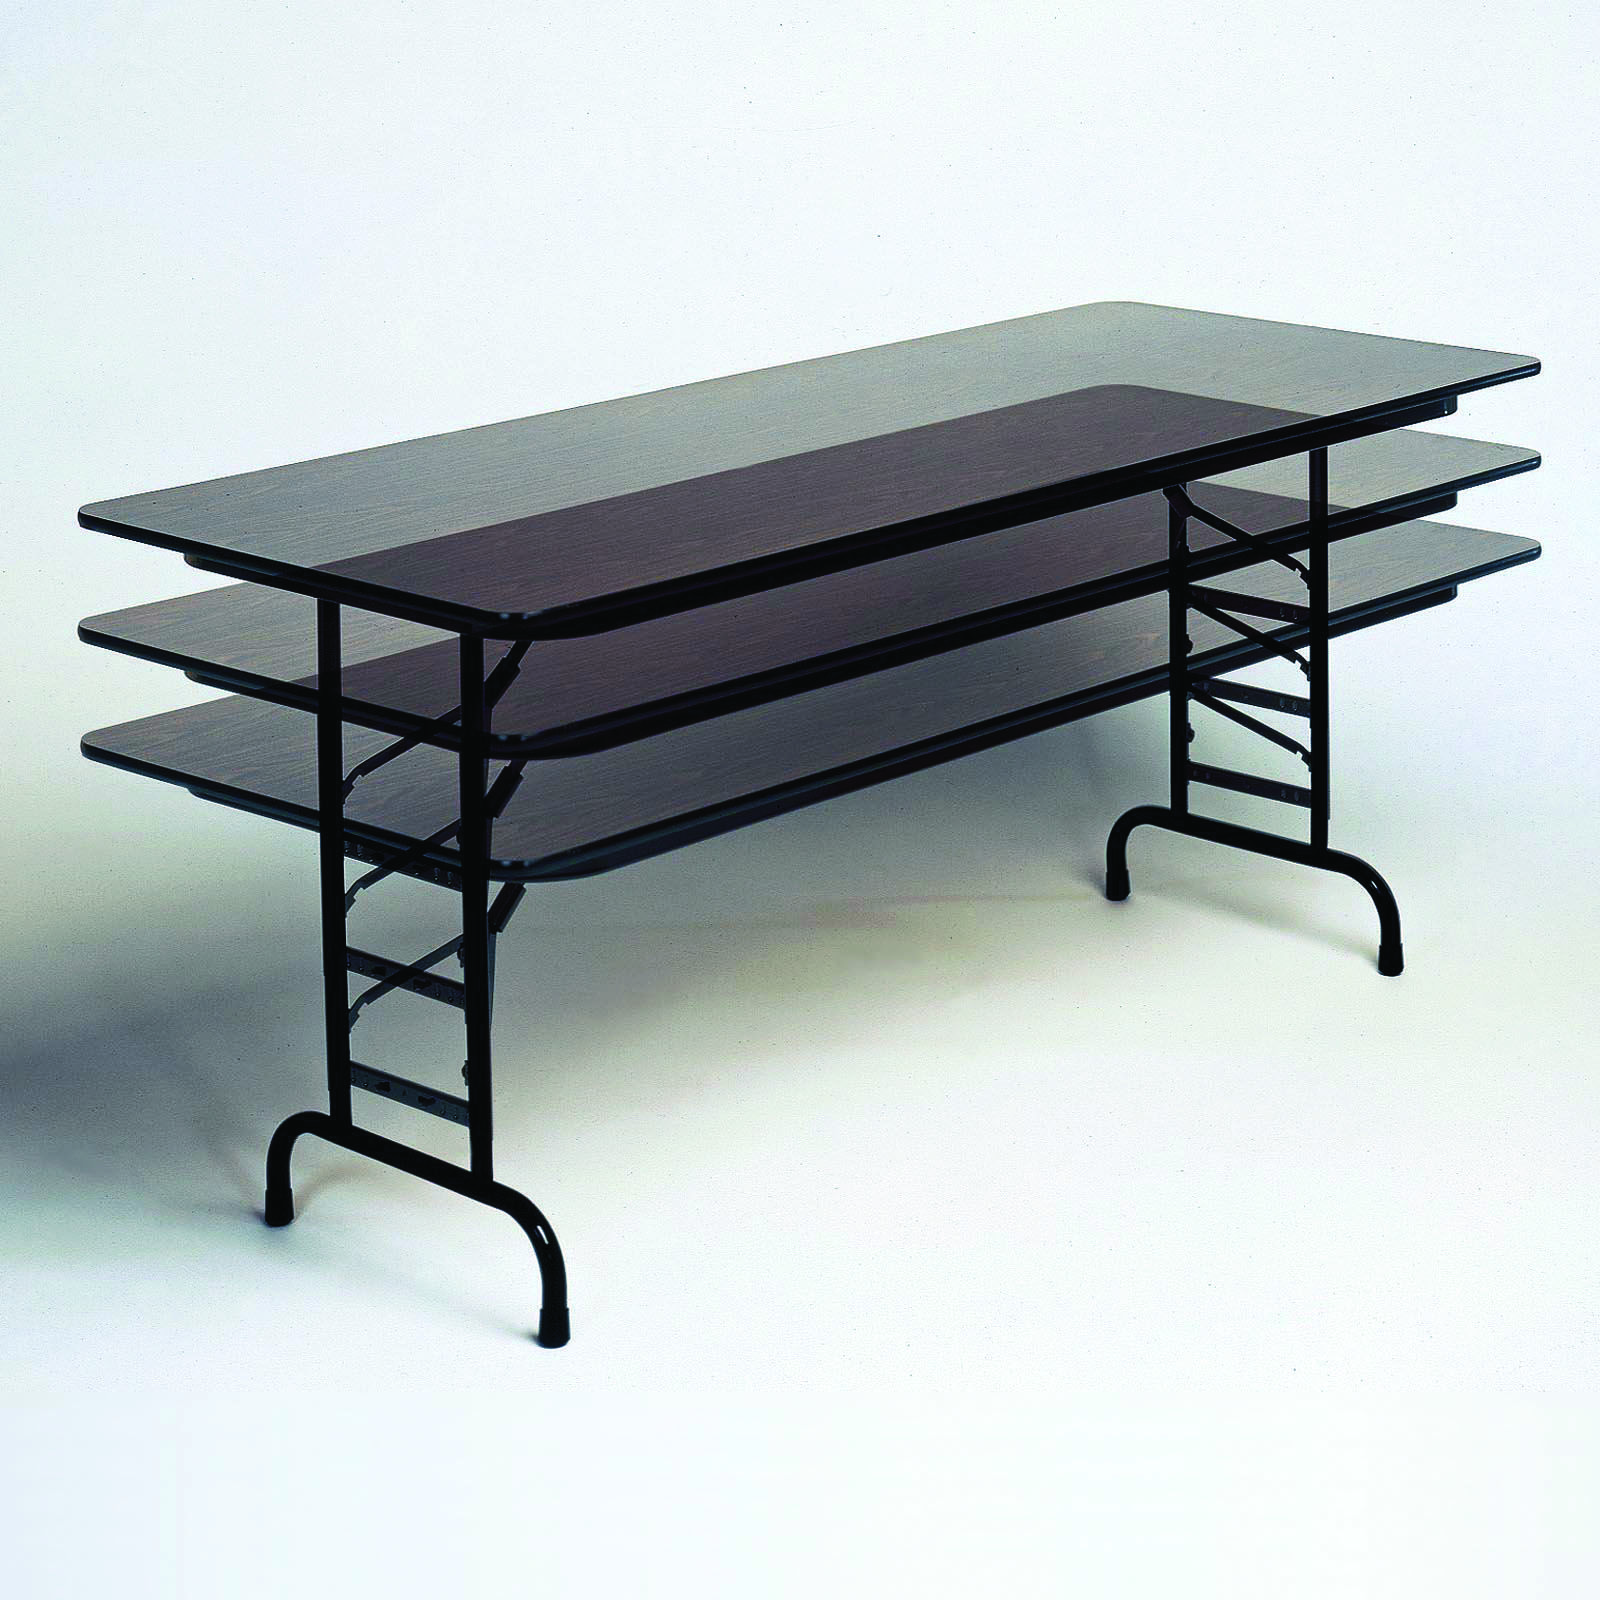 Stylish Folding Tables 36 Inches Wide Only In Mafahomes Com